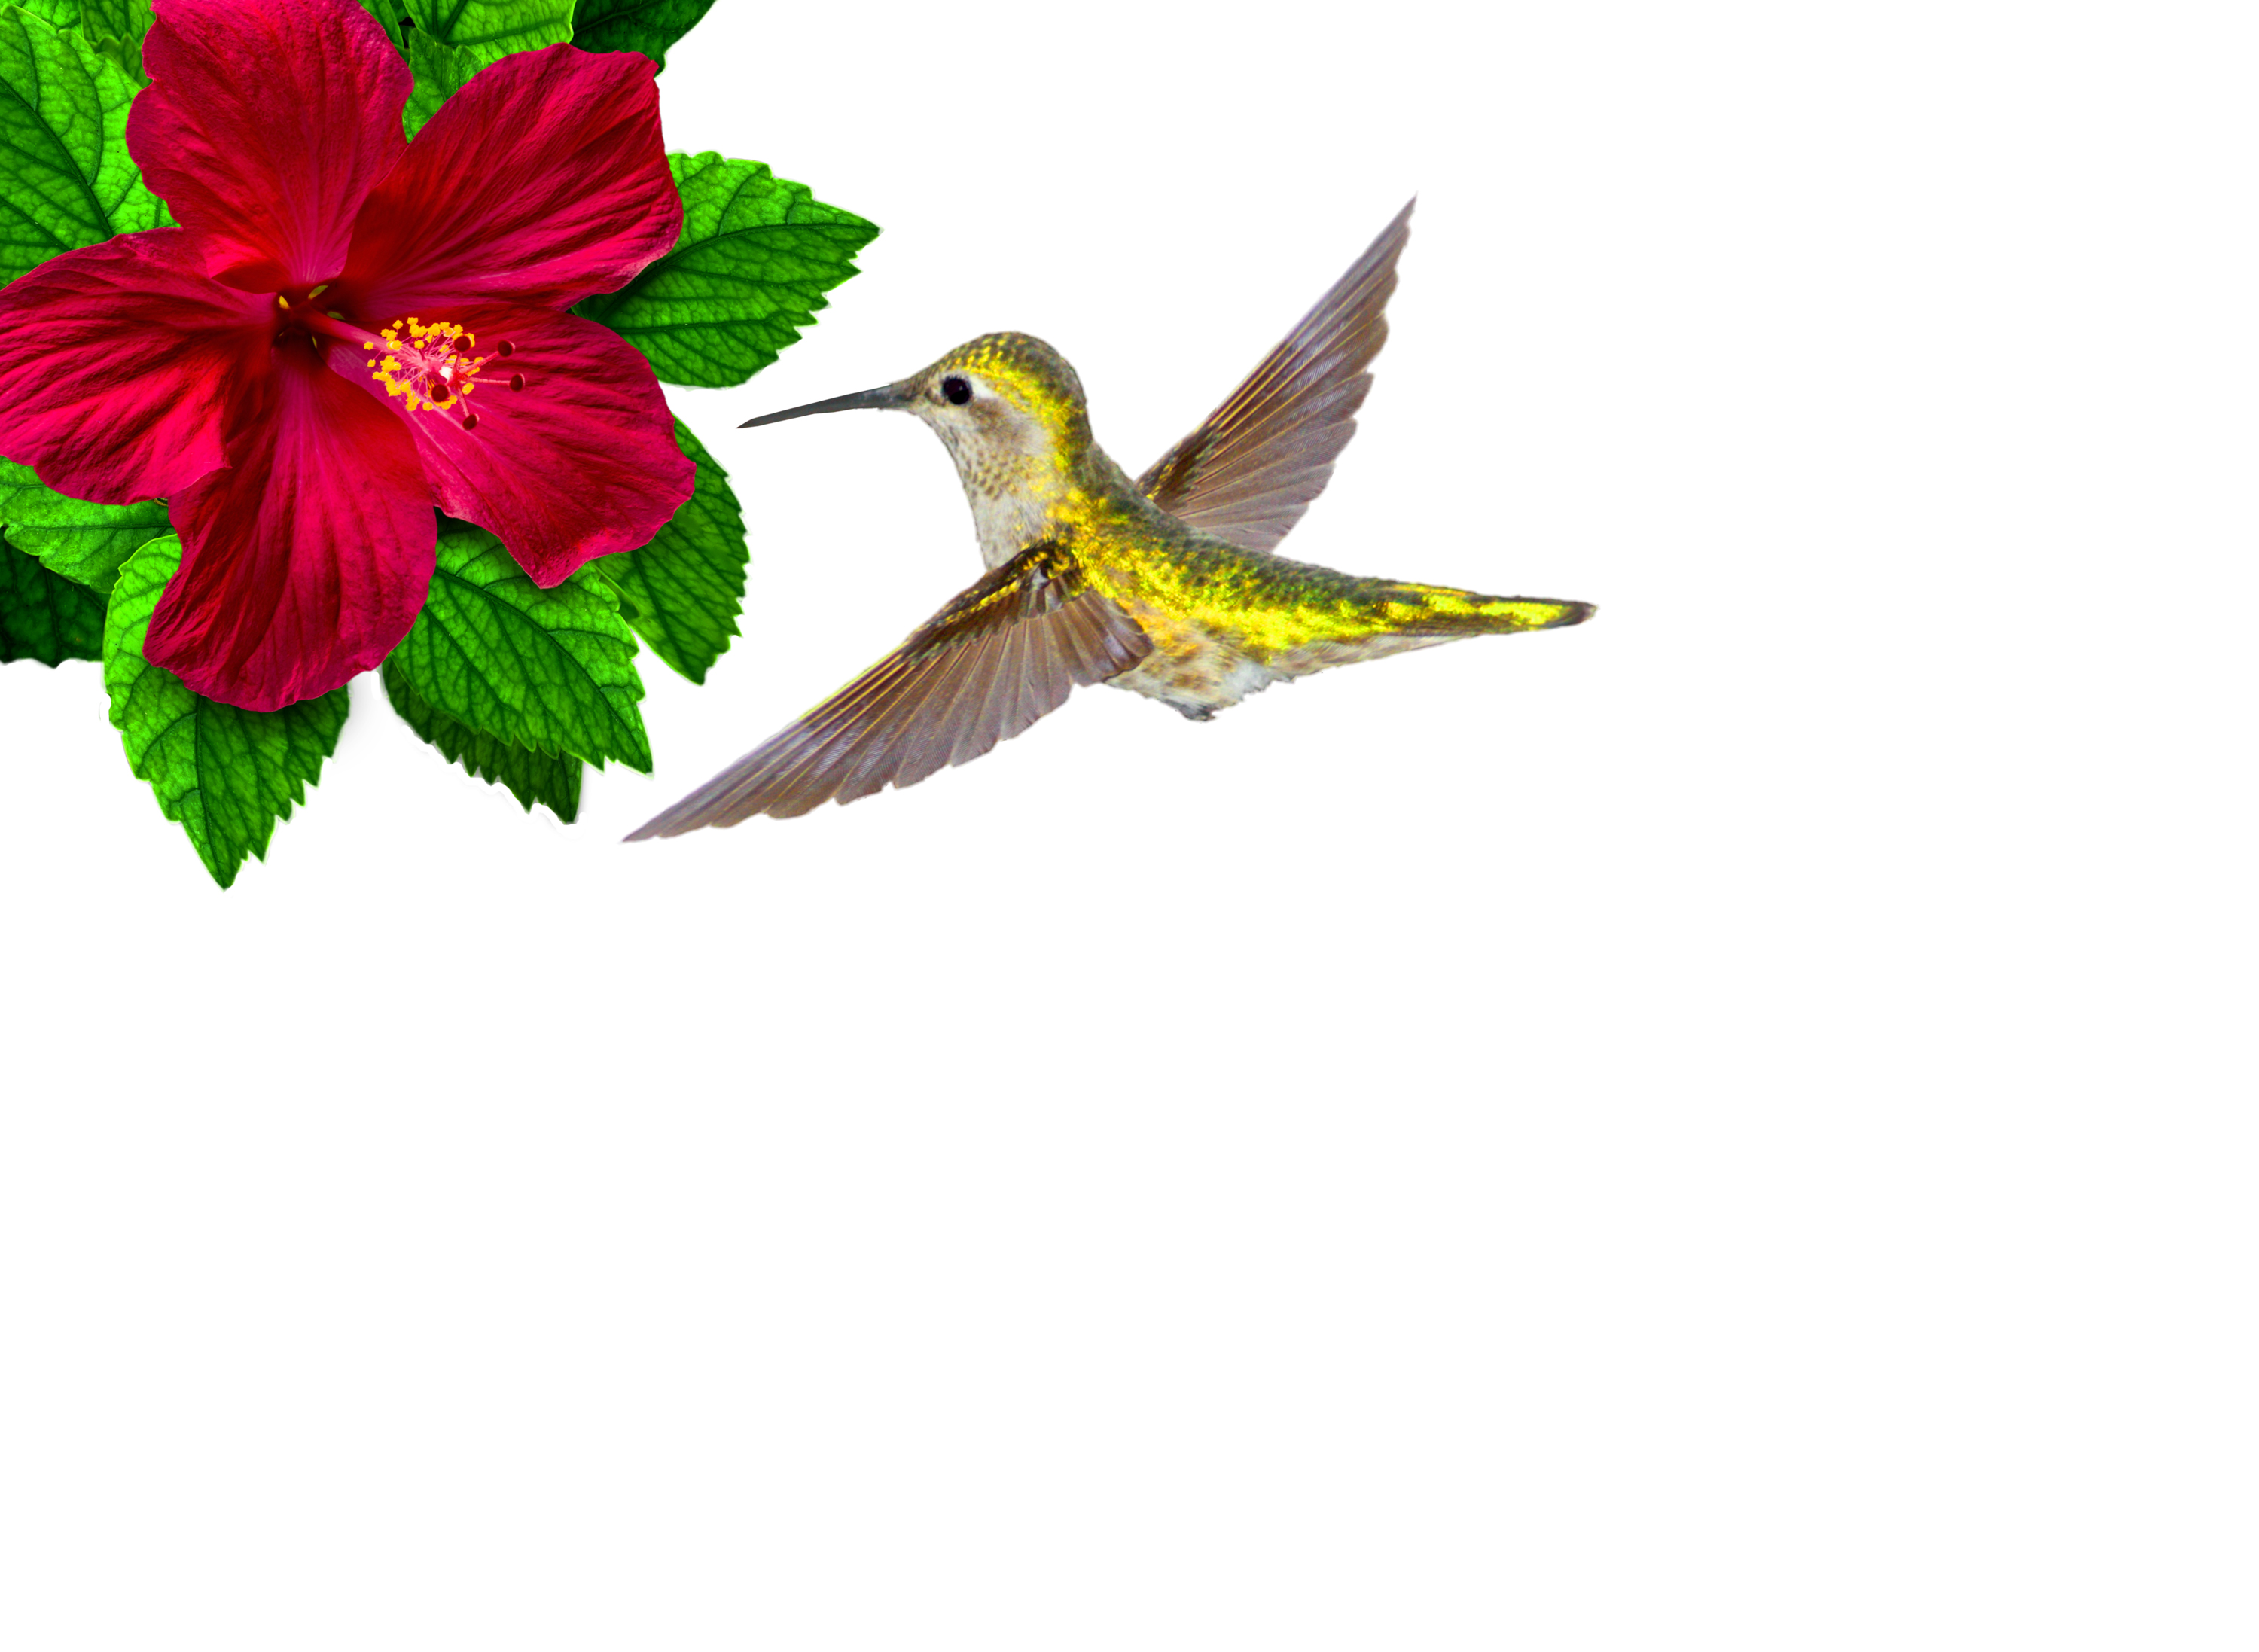 Ruby-throated hummingbird hovering photo